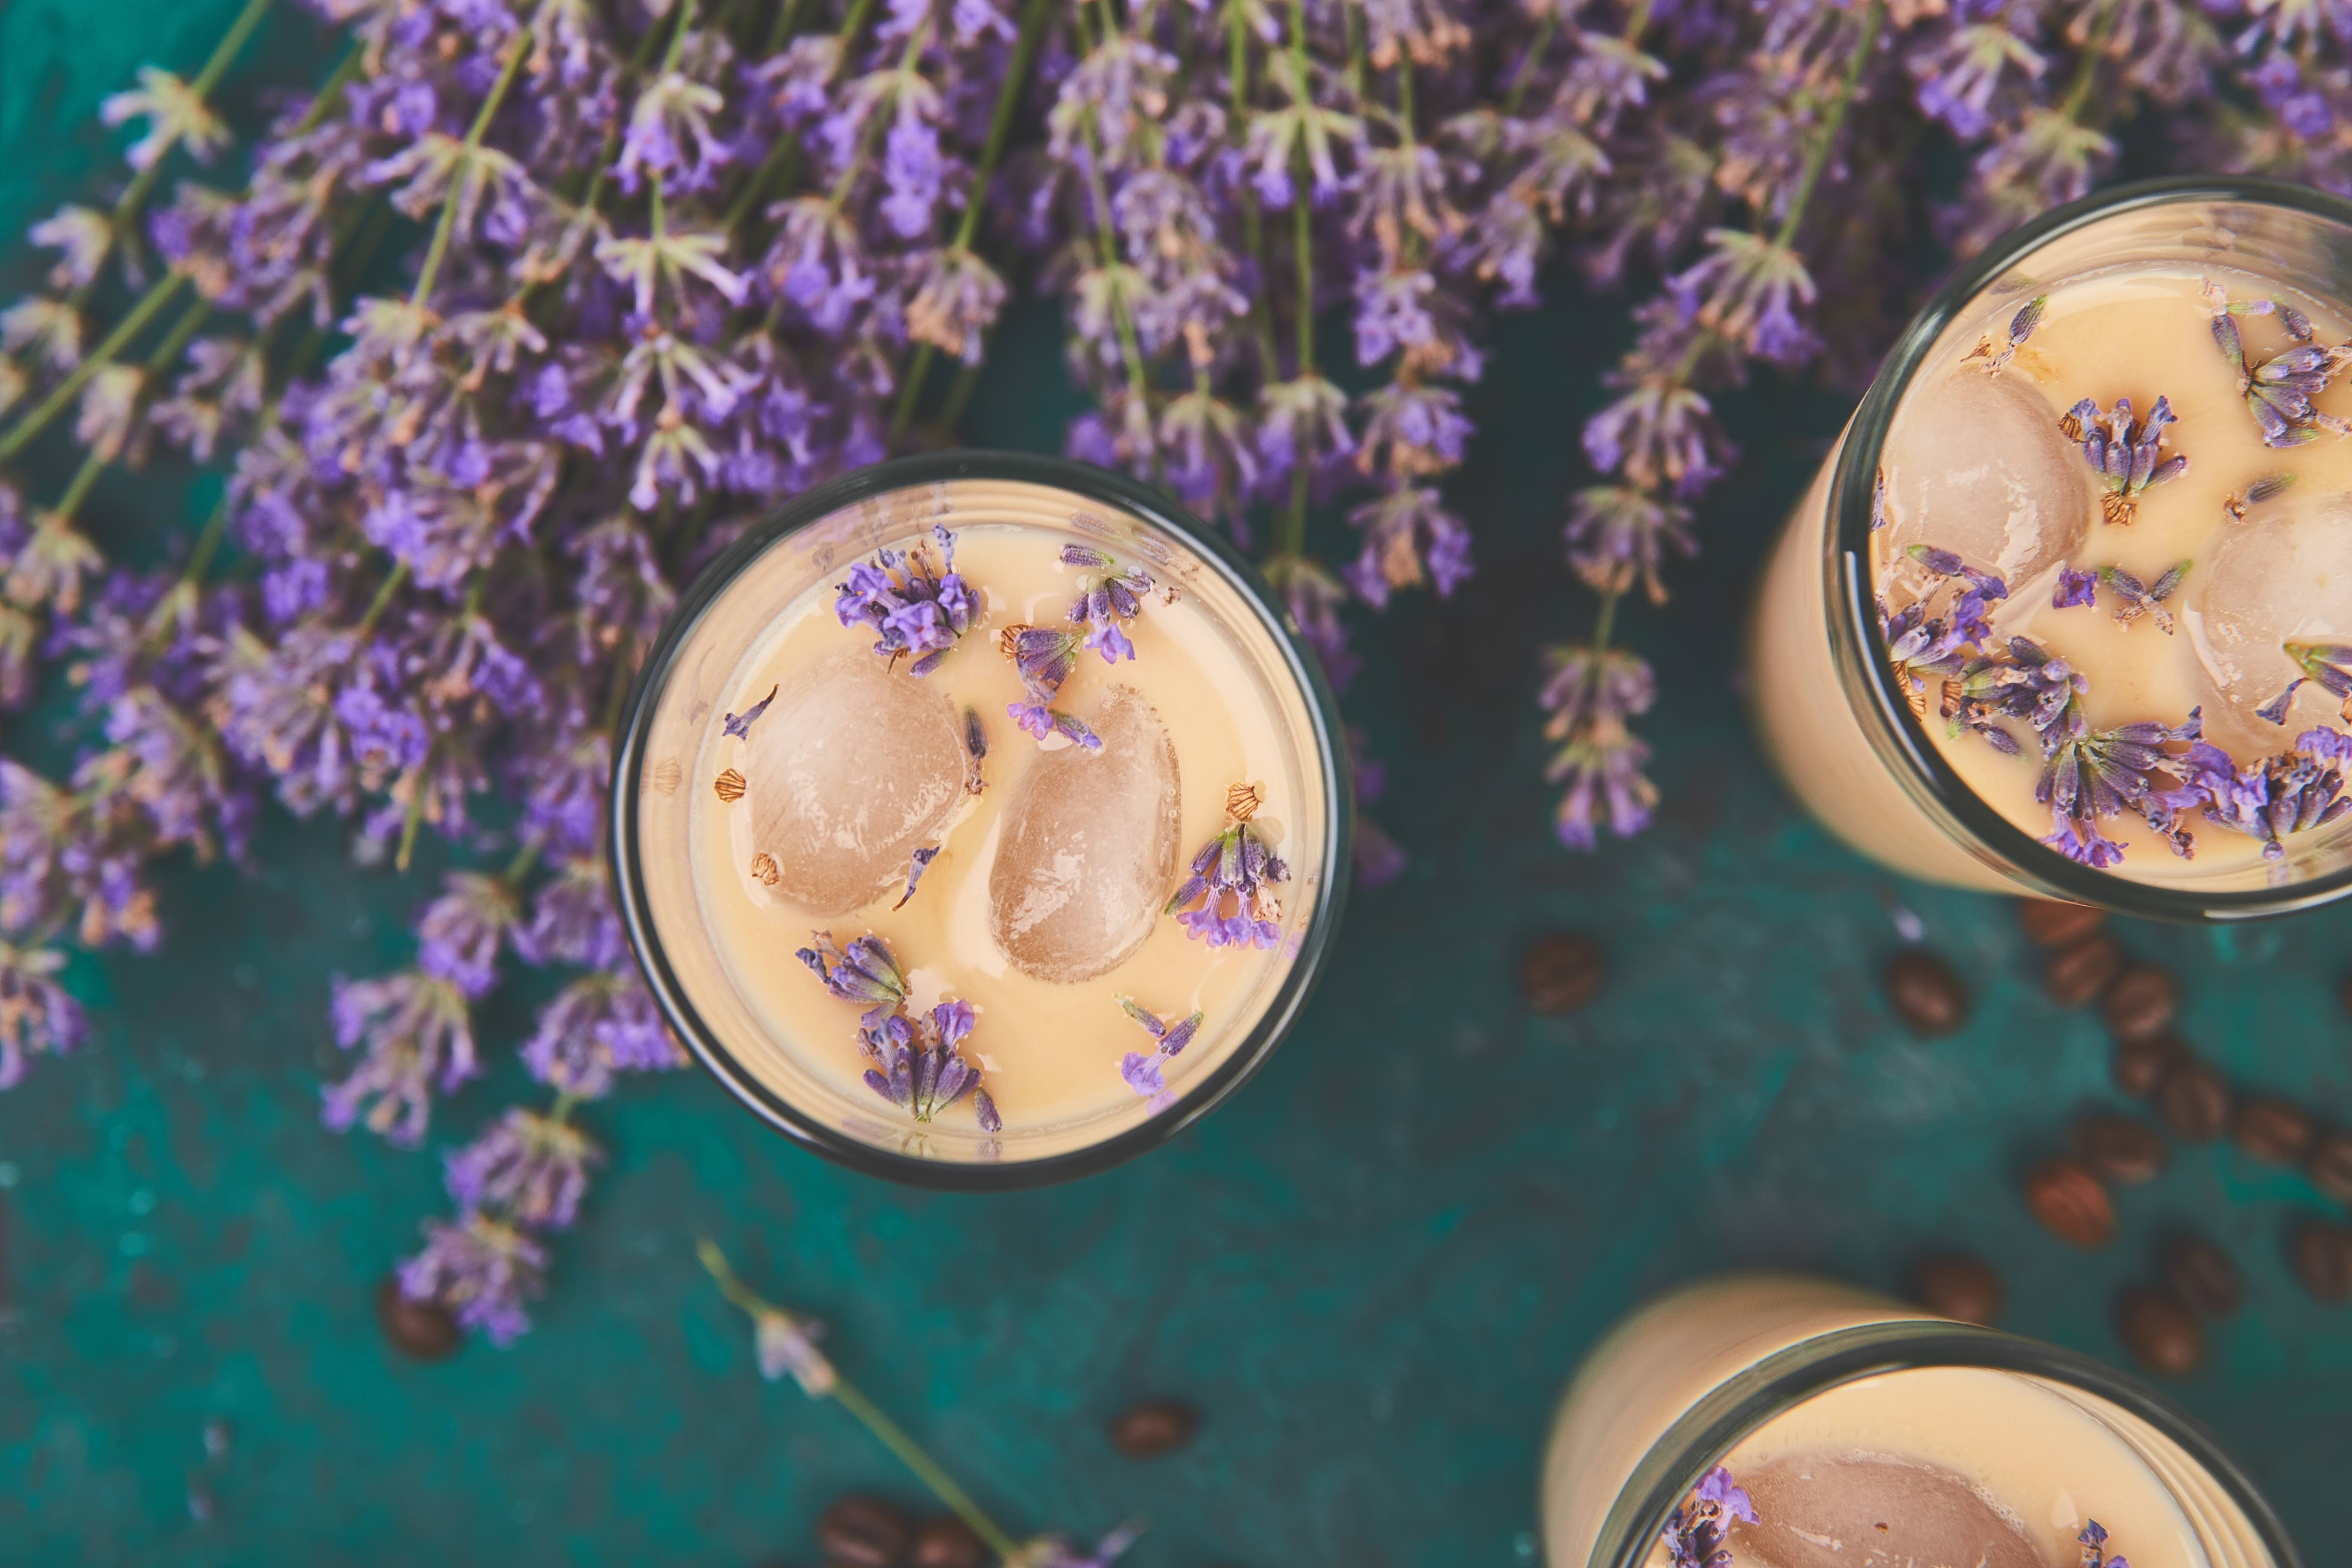 Summer drink iced coffee with lavender in glass and coffee beans on green background. Good Morning concept. Baeutiful ice coffee.